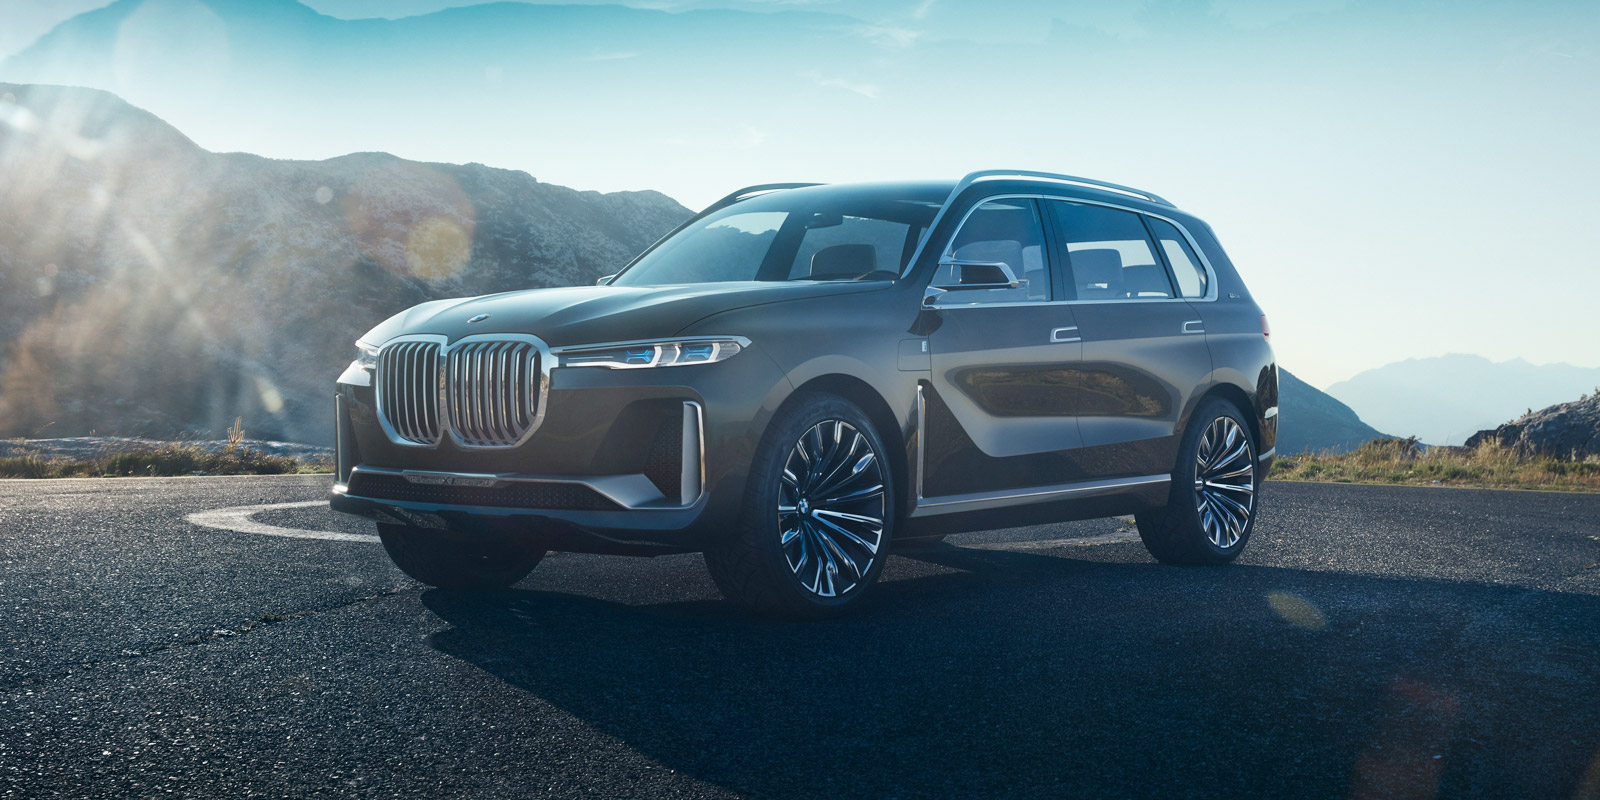 Bmw X7 Interior Photos Www Indiepedia Org